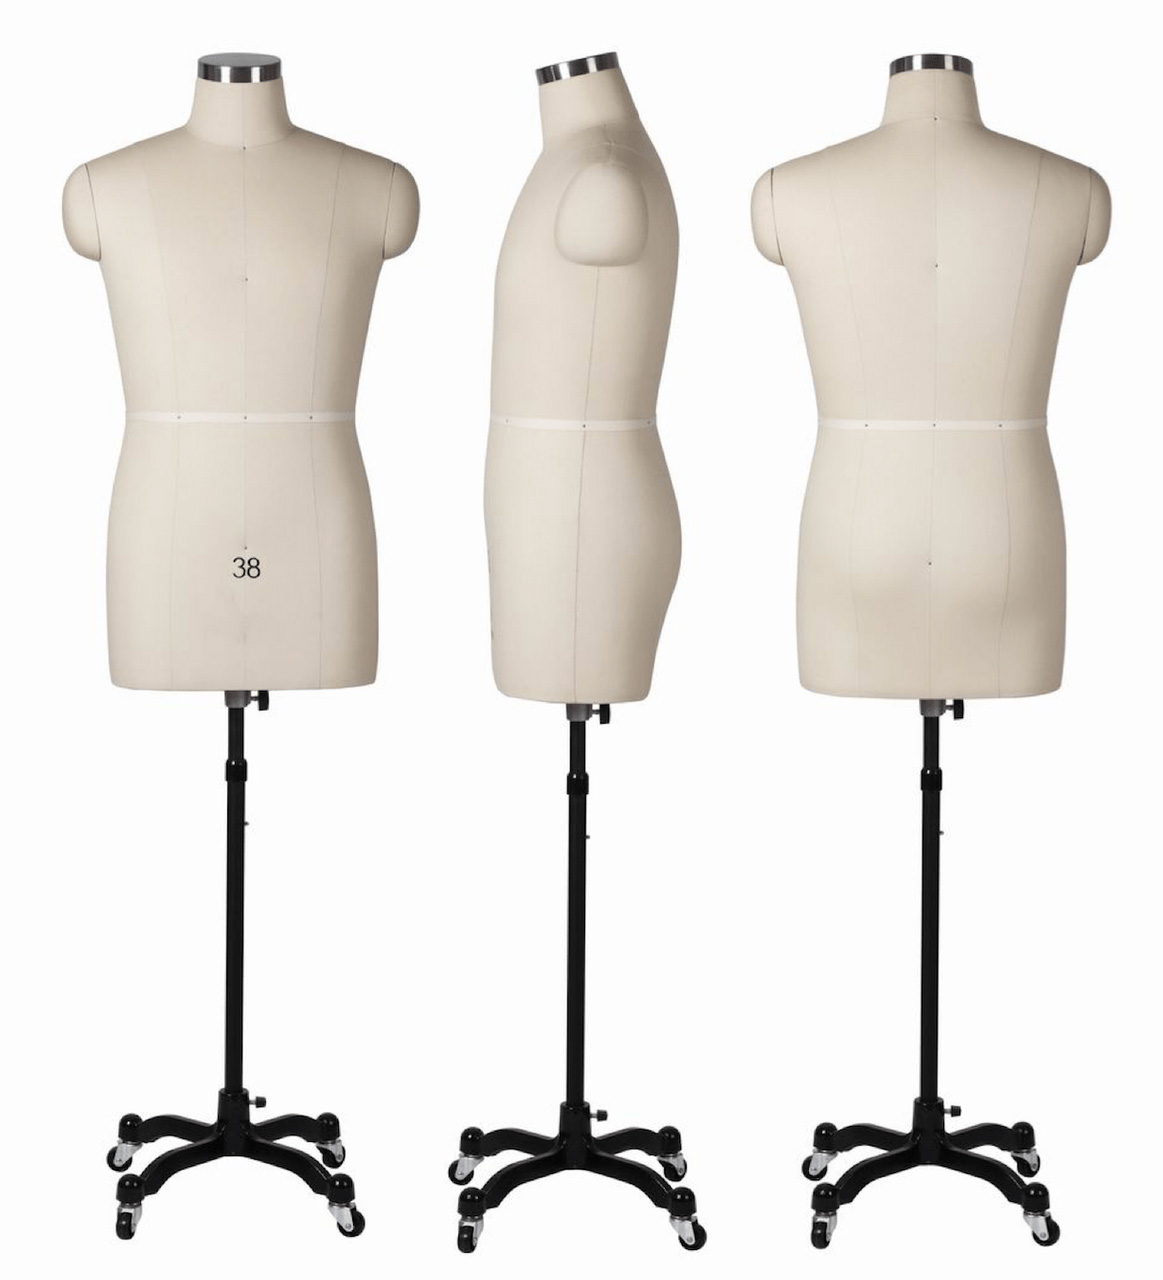 ZM-1611 - Maya - Professional Fabric Dress Form Mannequin